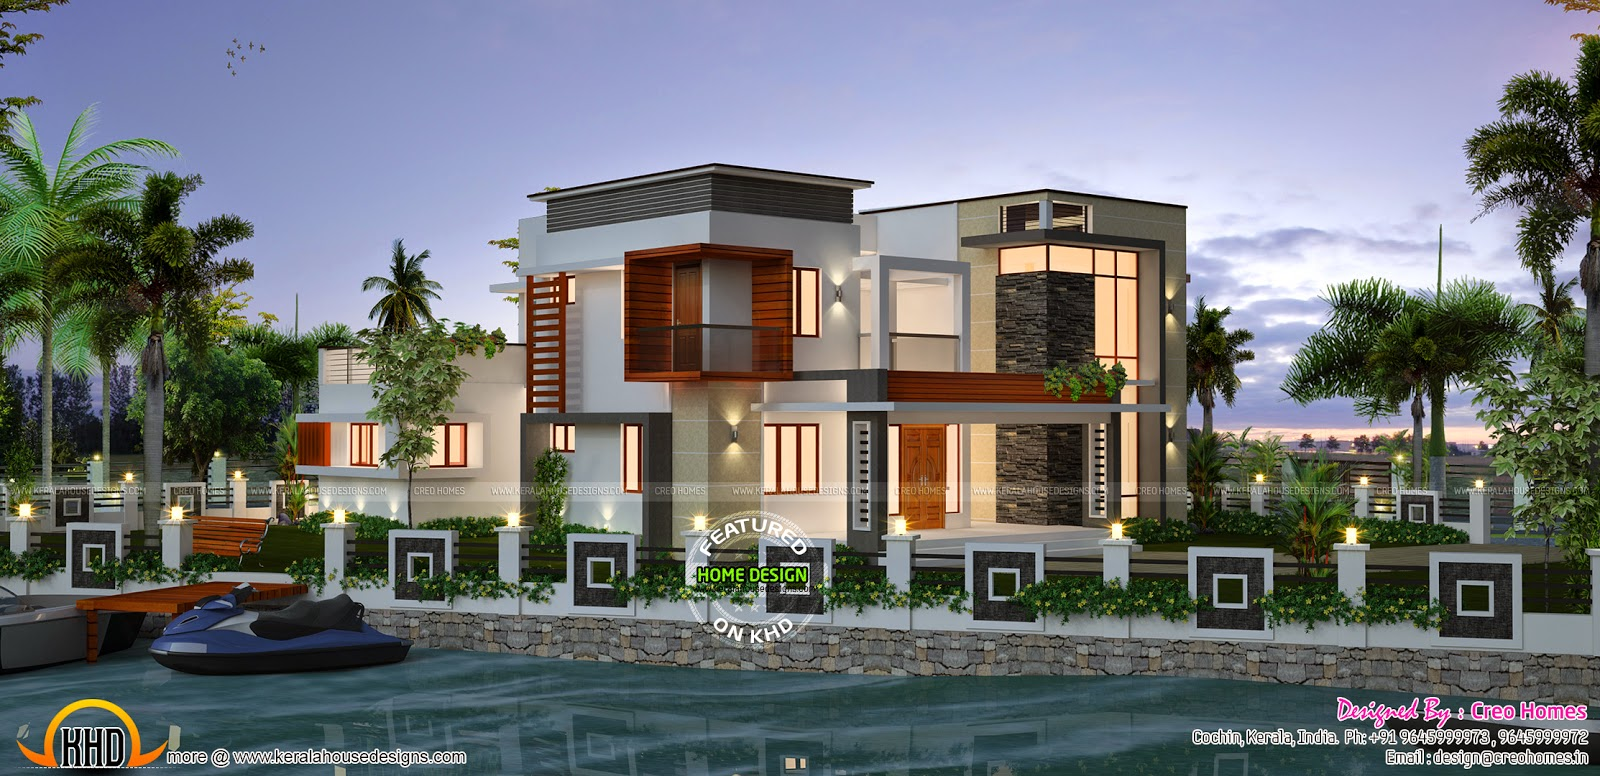 Waterfront house design kerala home design and floor plans for Waterfront house designs